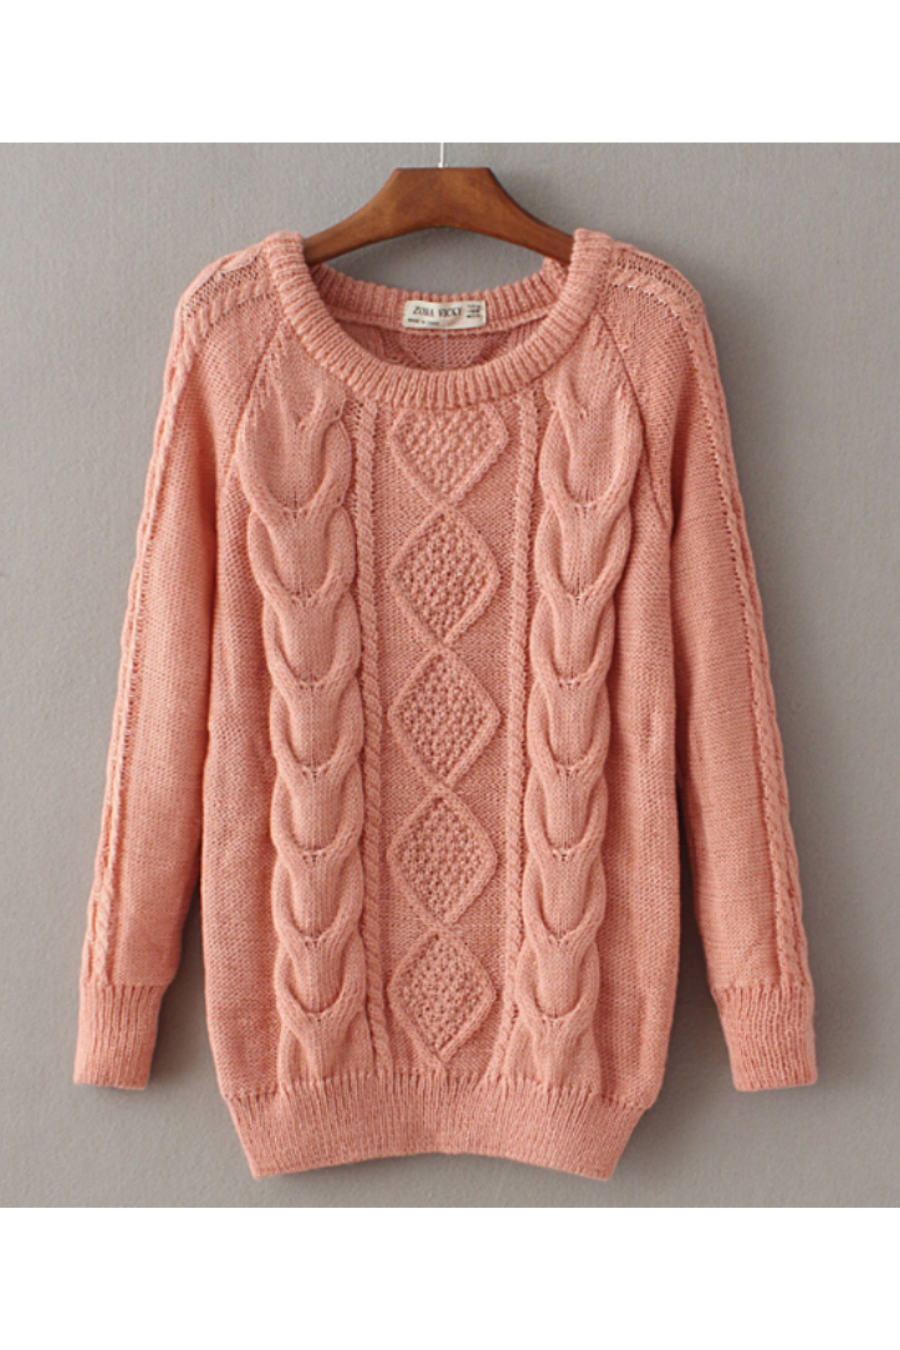 751e7a2850 Classic Cable Knit Sweater in 2019